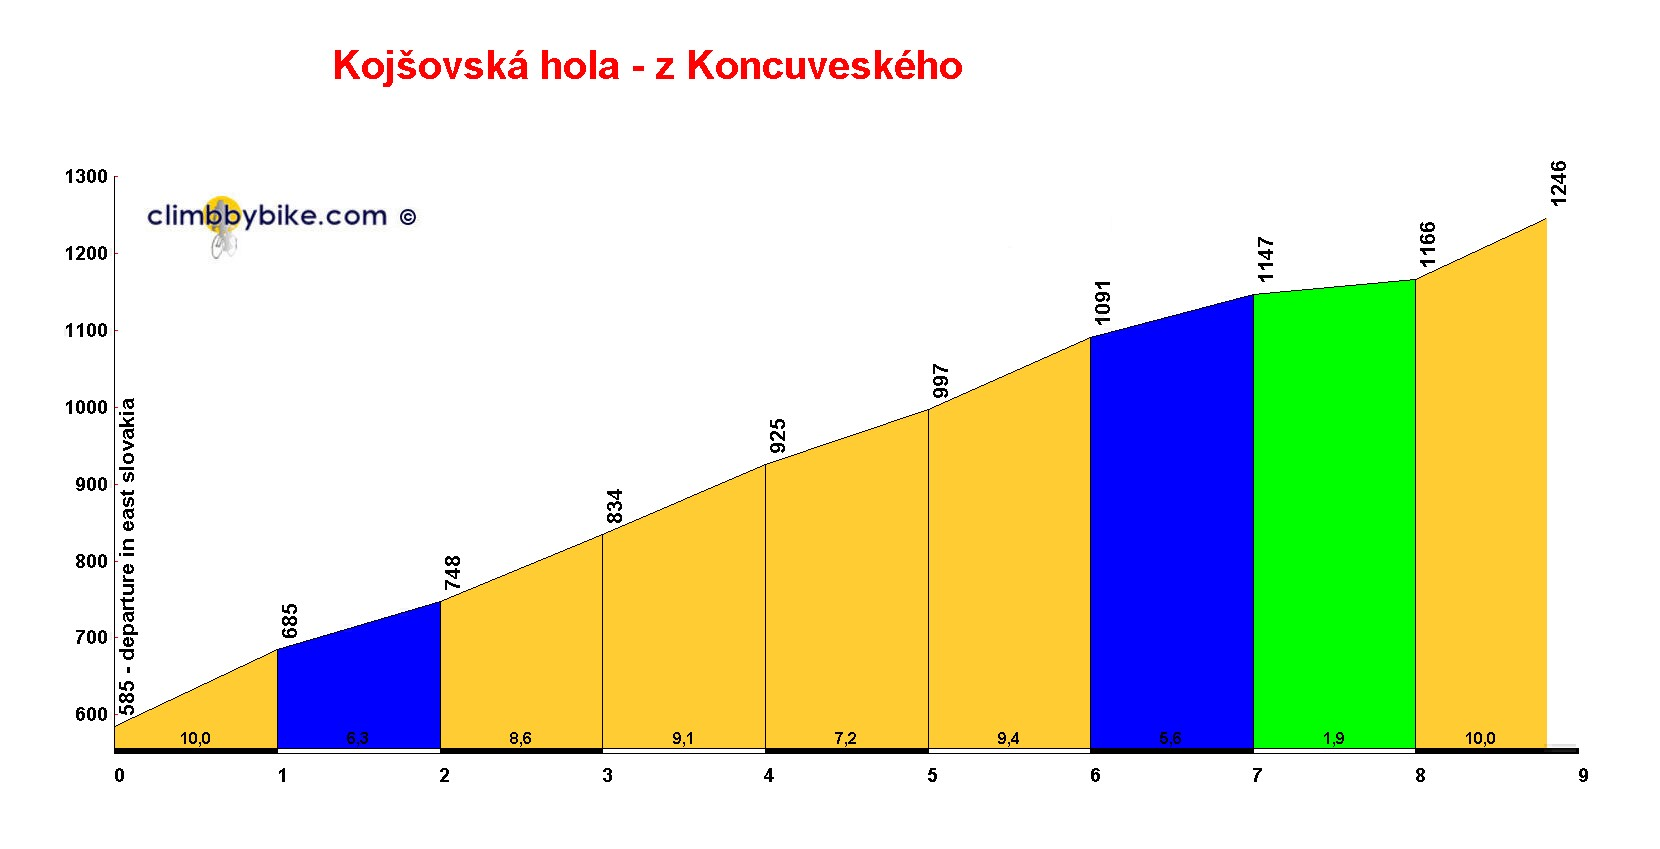 Elevation profile for Kojsovská hola - z Koncuveského